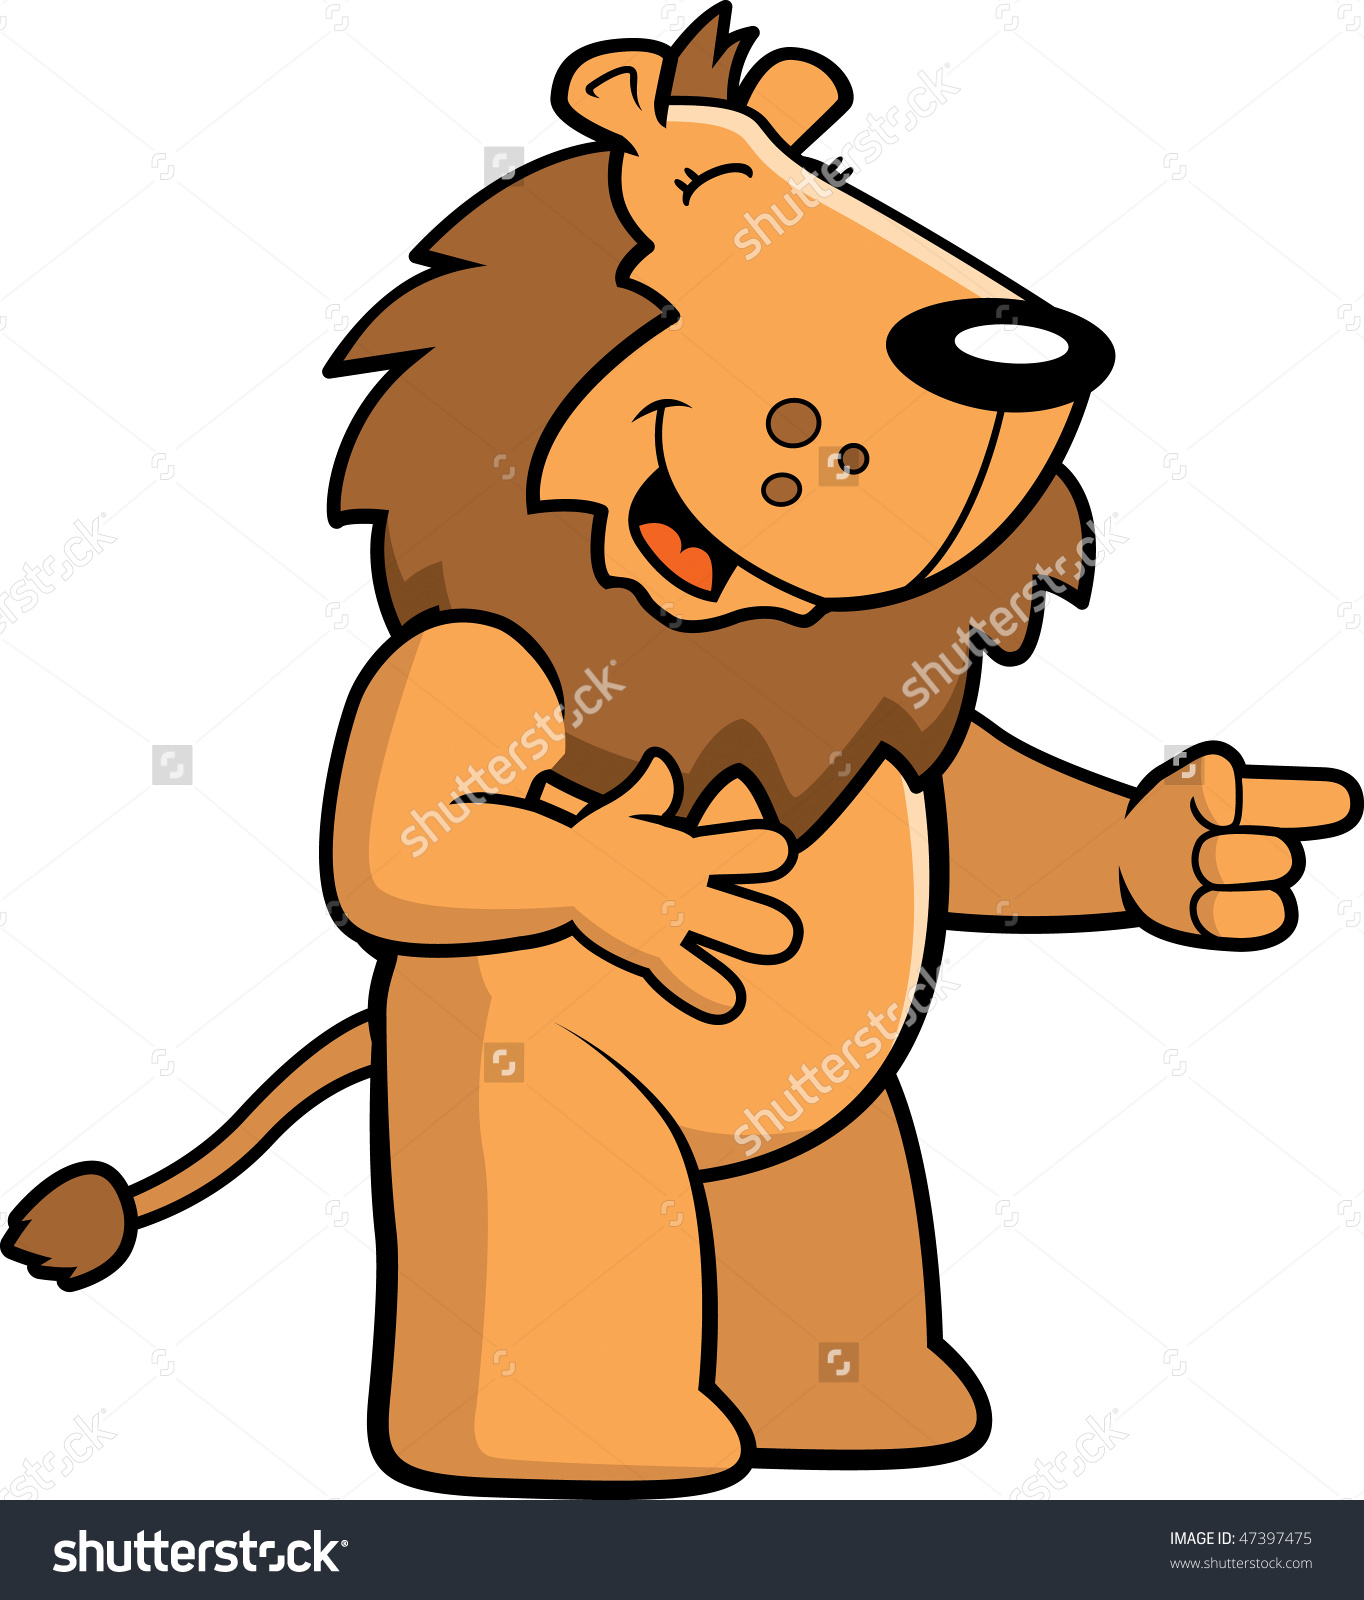 lion laughing clipart #17